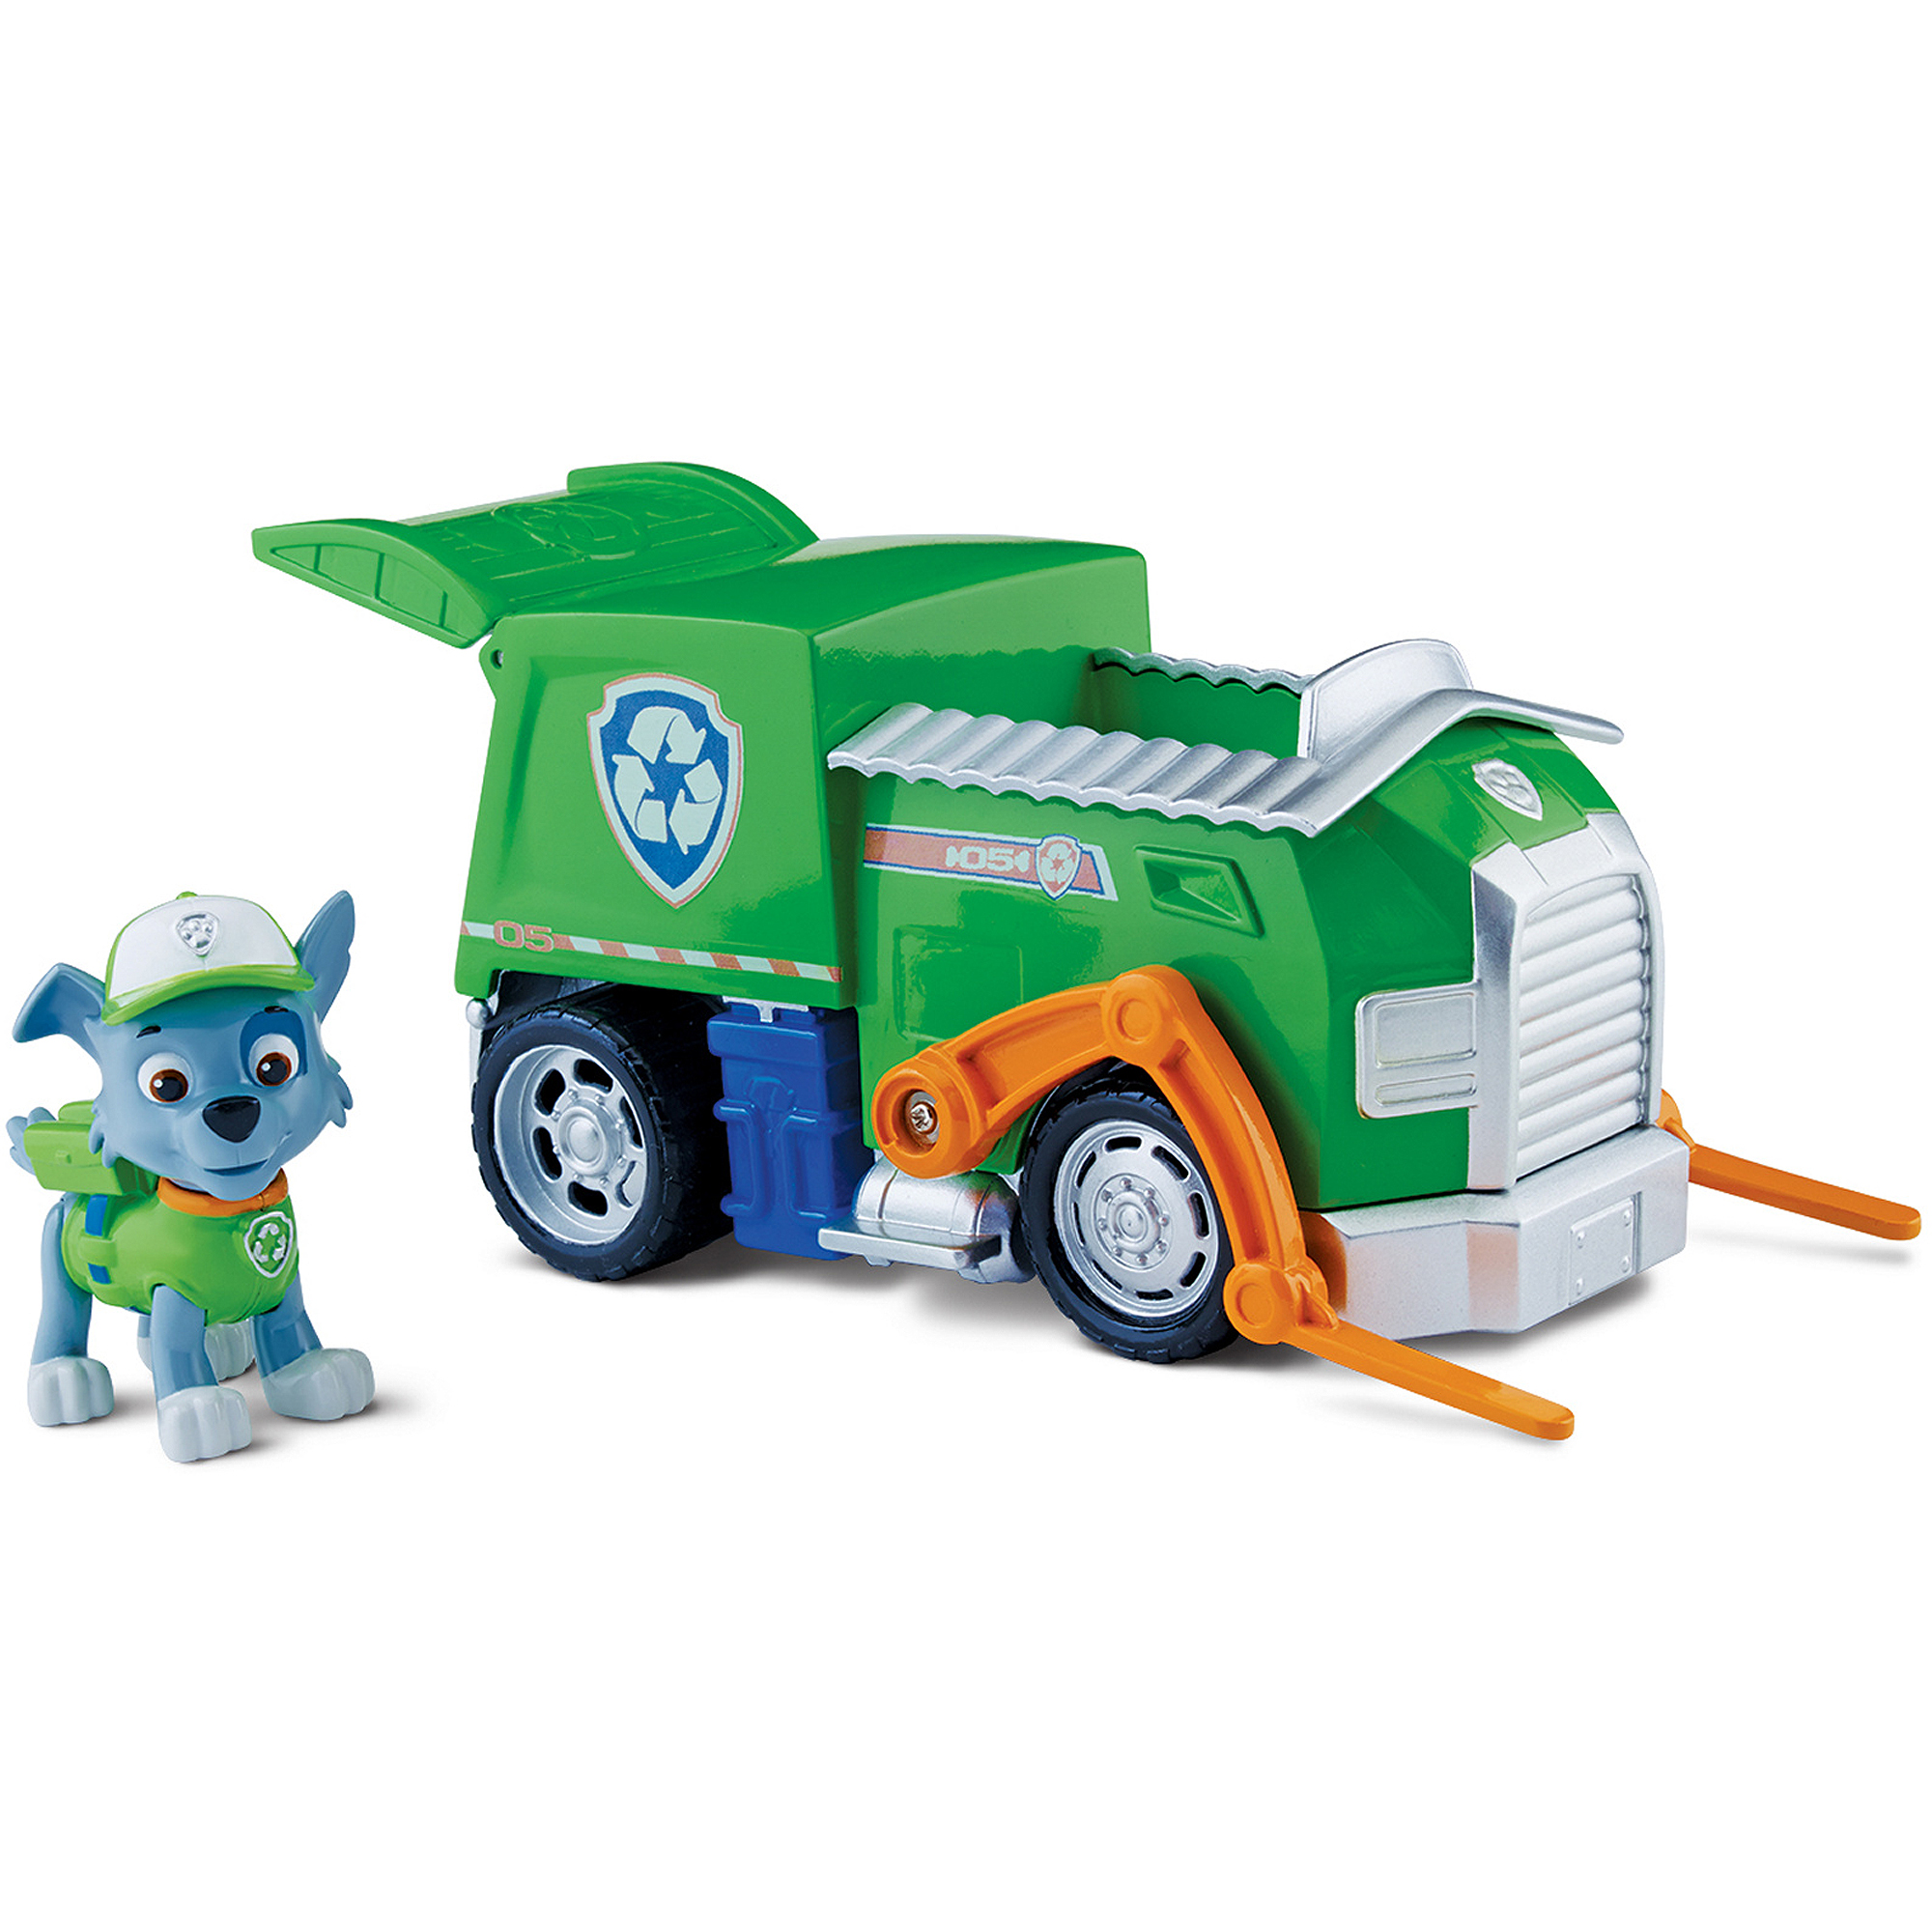 Nickelodeon Paw Patrol - Rocky's Recycling Truck, Vehicle and Figure